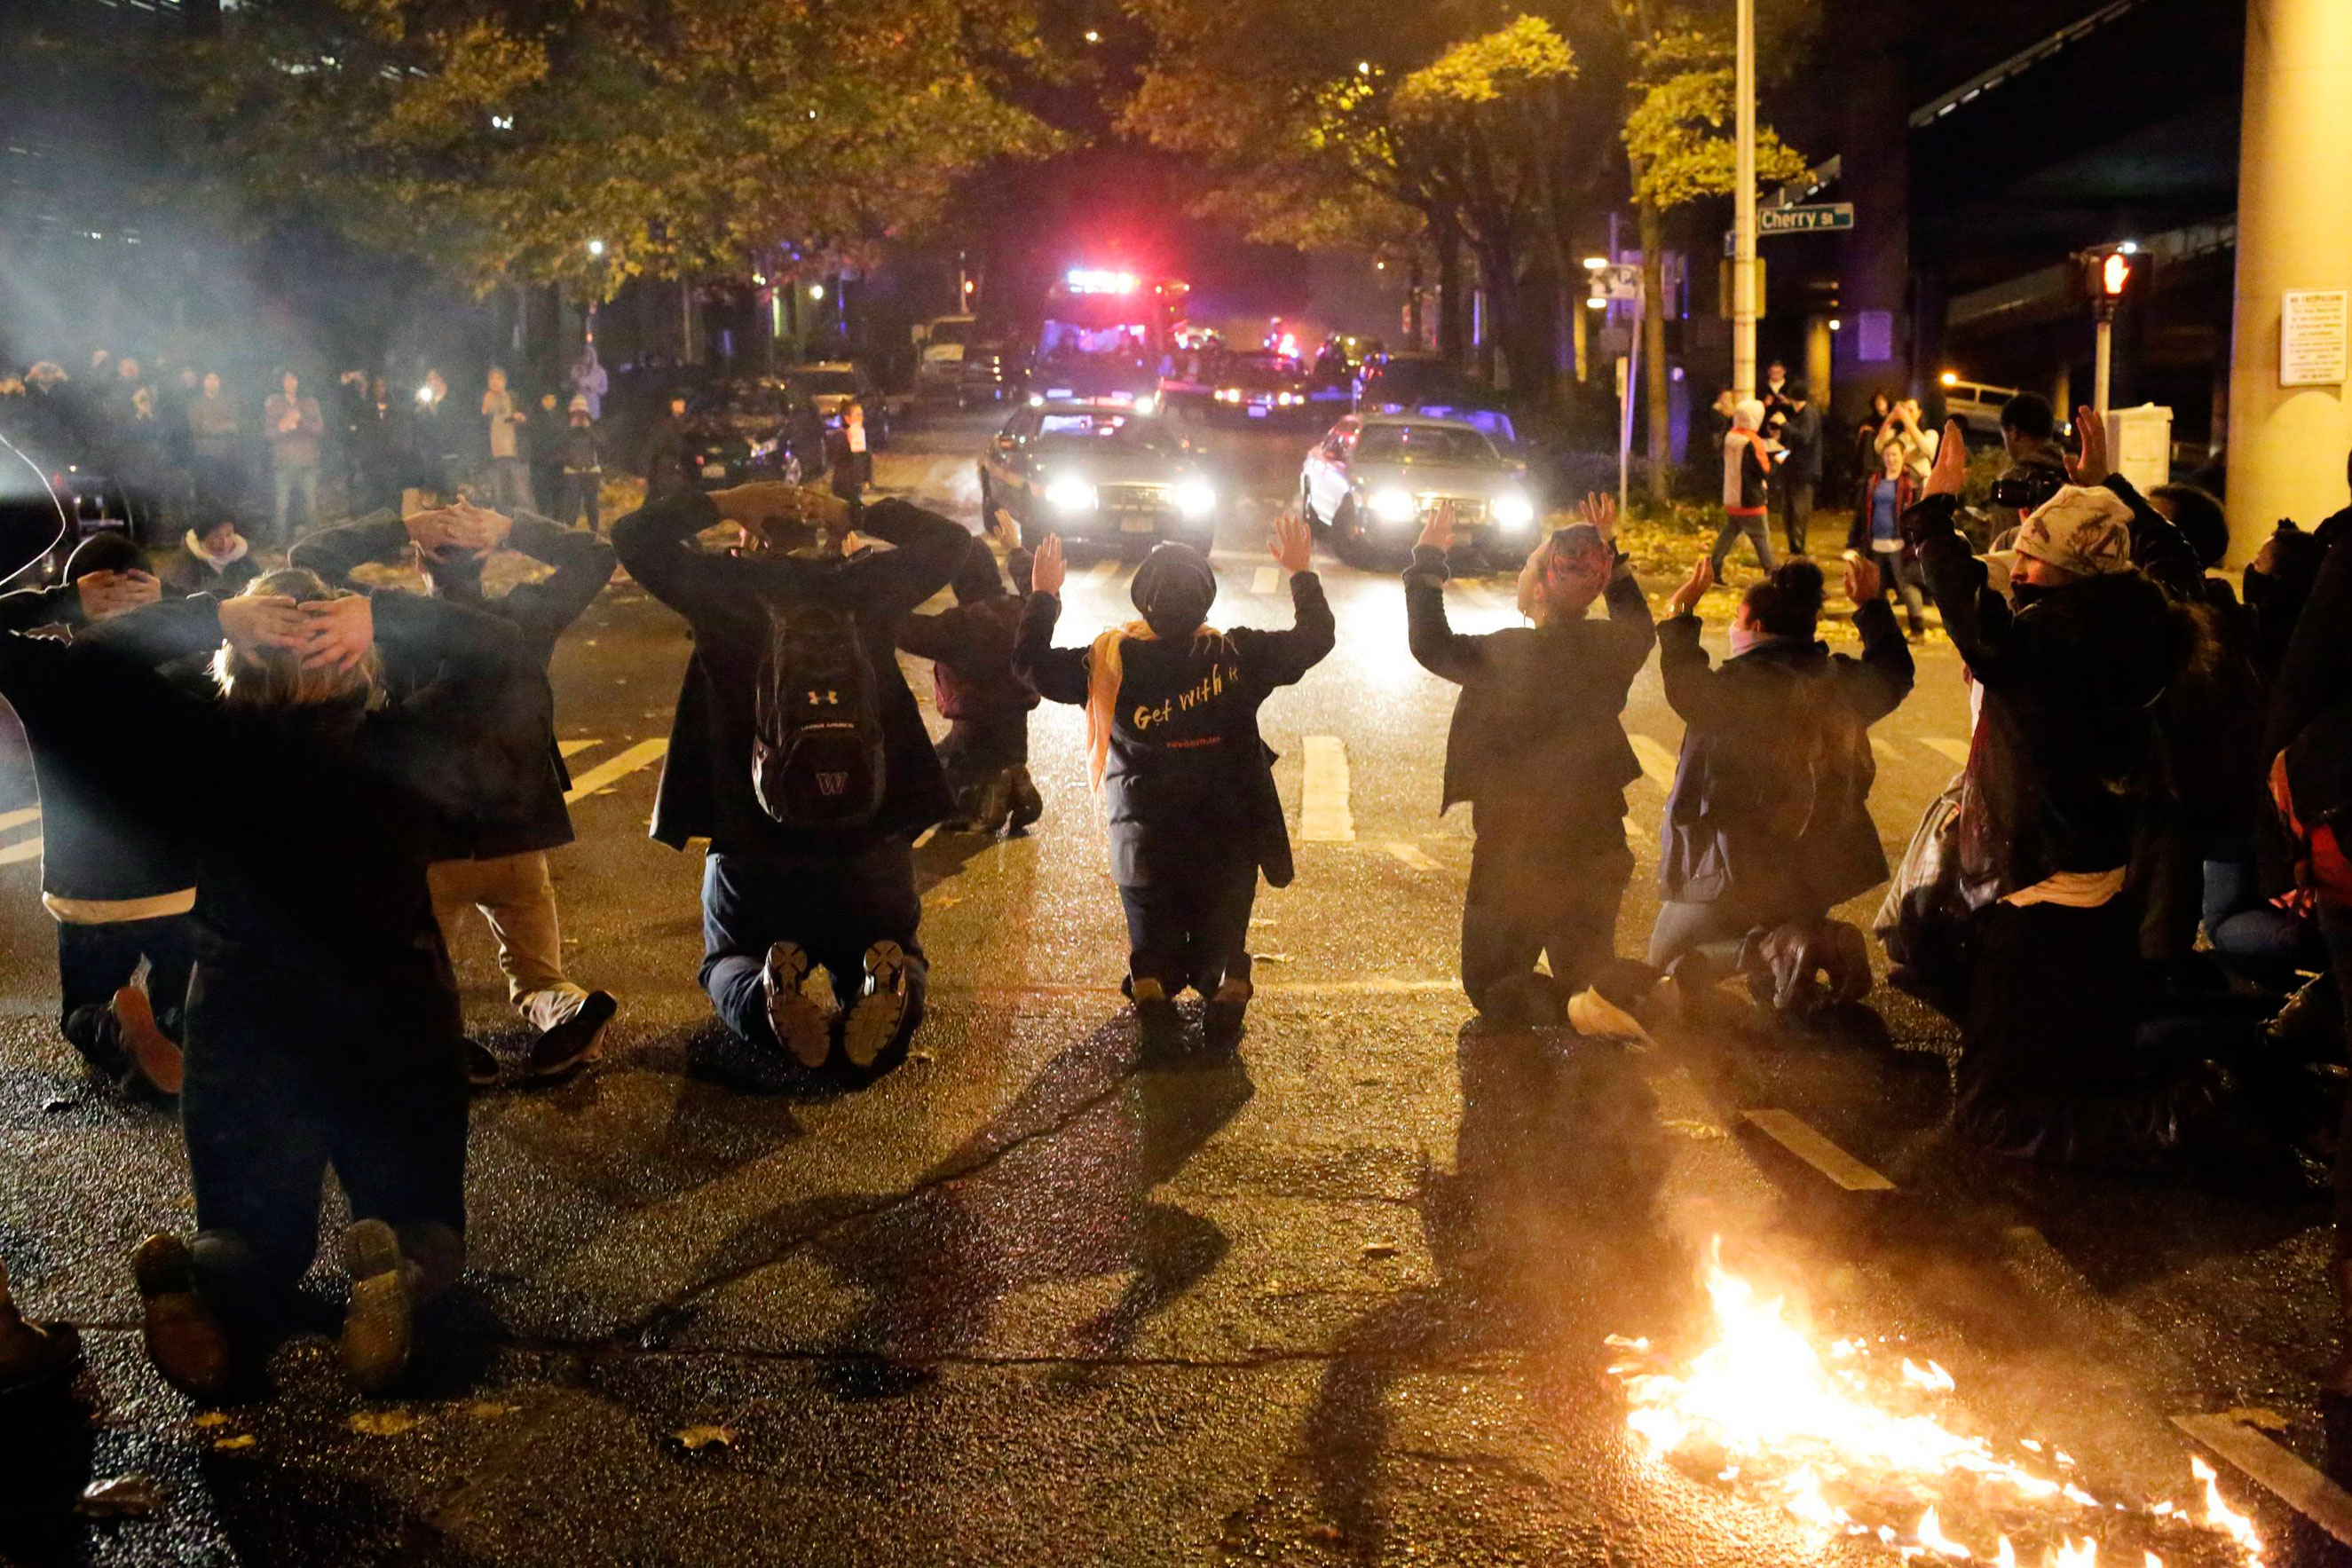 Protesters kneel during a demonstration in Seattle on Nov. 24, 2014.